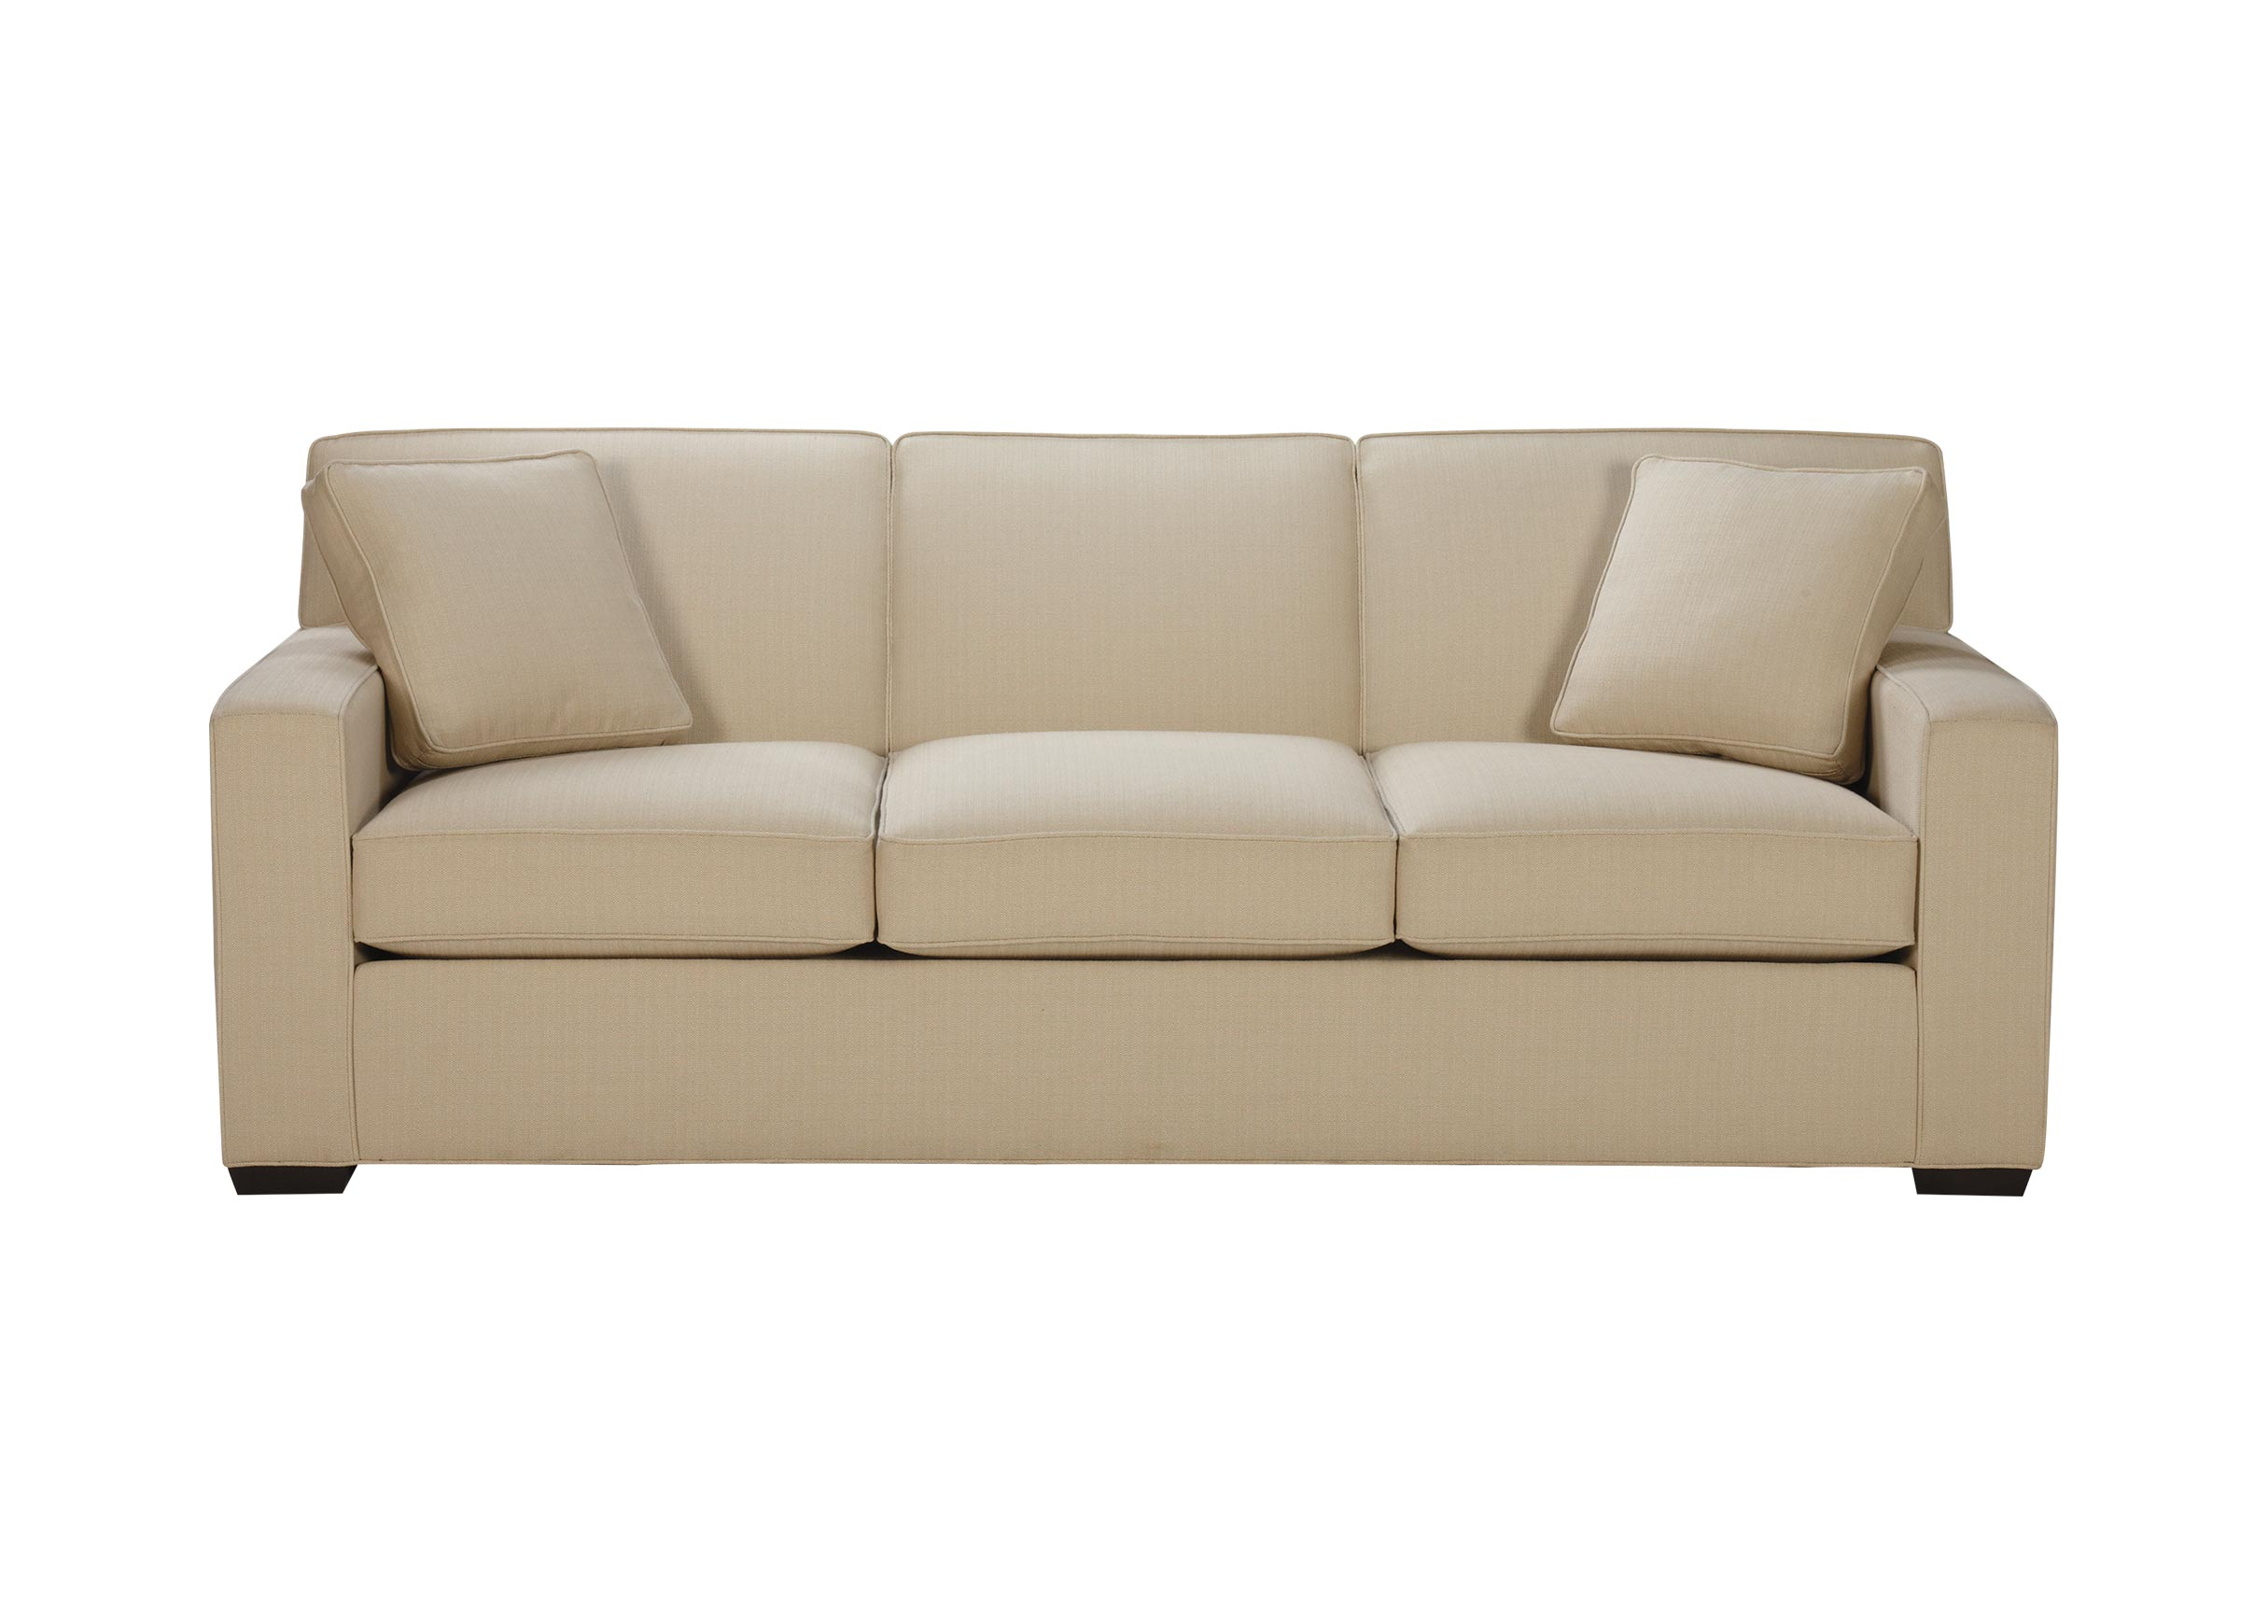 Sofas By Ethan Allen Kendall Sofa | Sofas & Loveseats | Ethan Allen